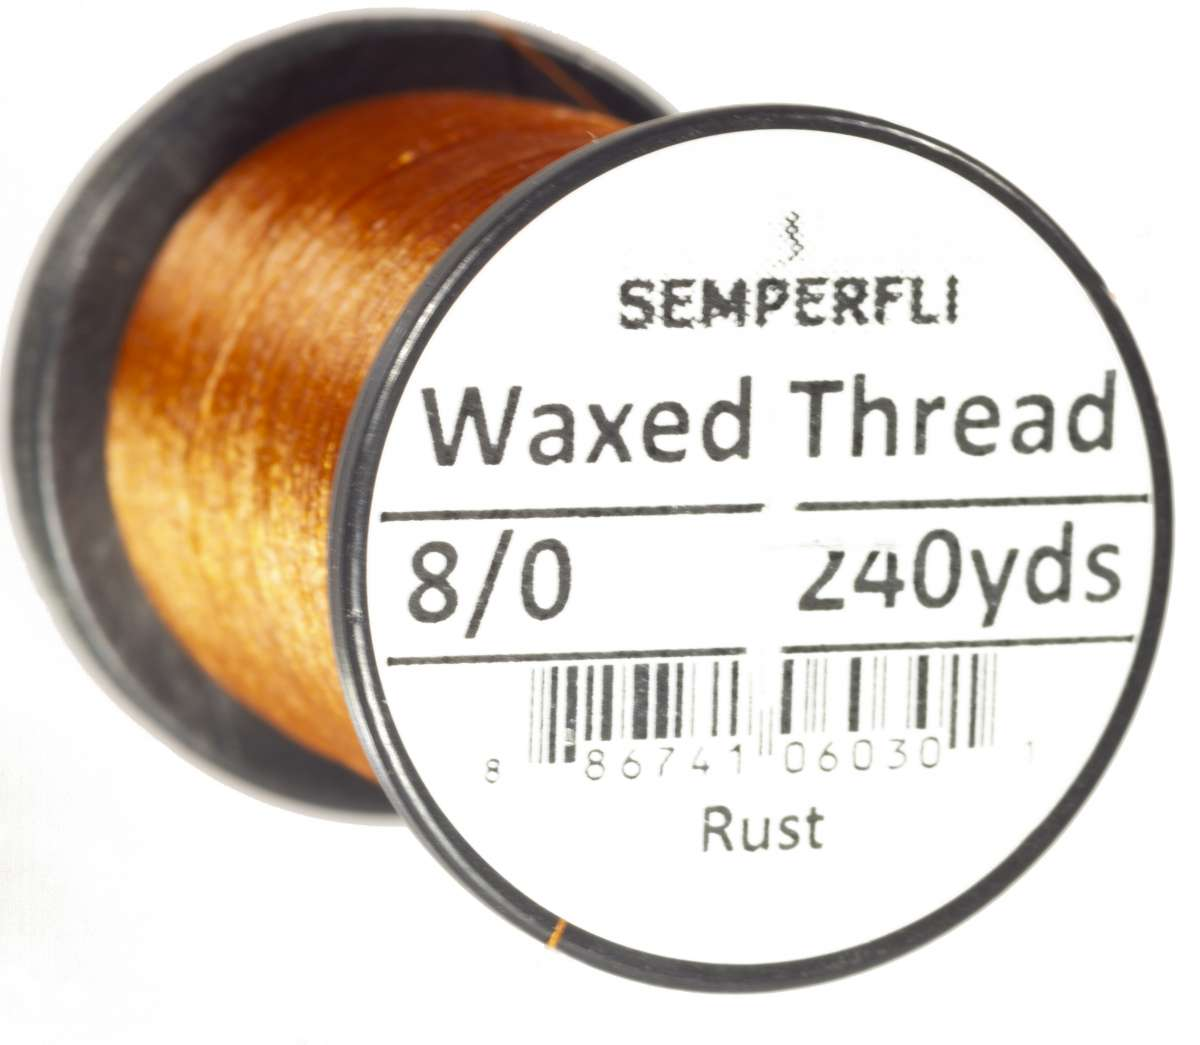 8/0 Classic Waxed Thread Rust sem-0400-1064